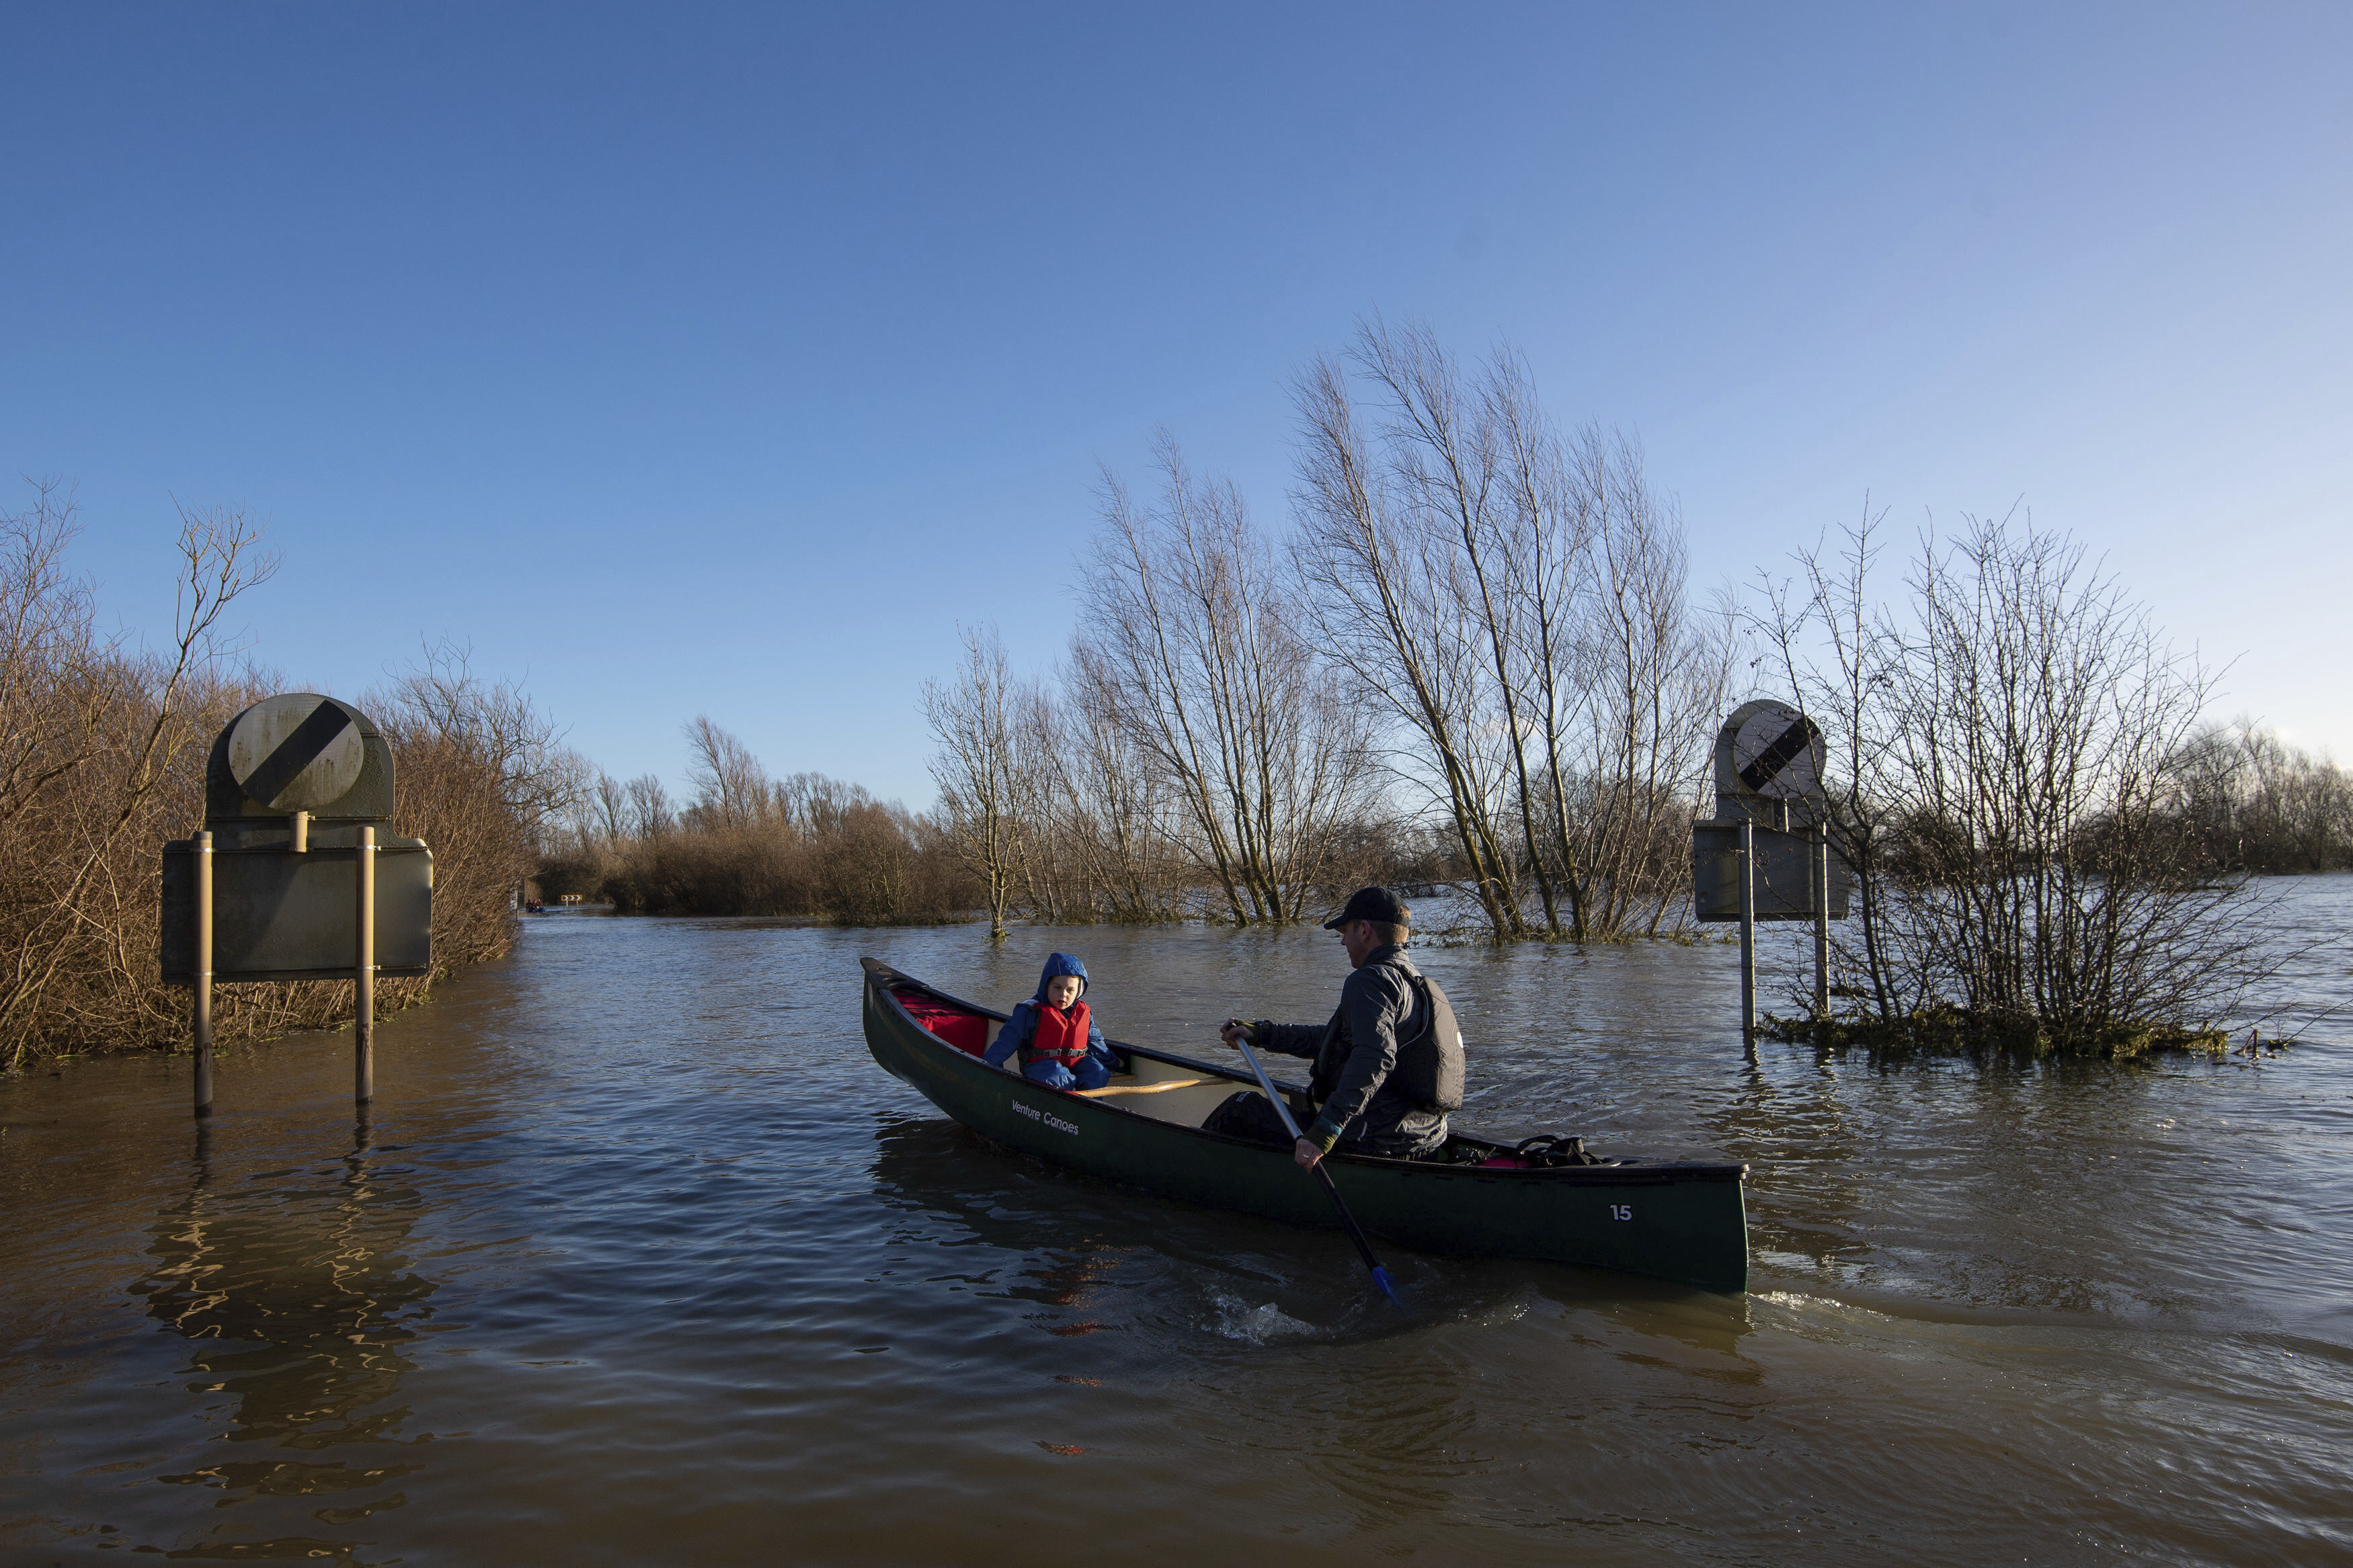 Anthony Gleave and his son Arthur, 3, canoe along the flooded A1101 in Welney, Norfolk, England, Sunday, Dec. 27, 2020. Hurricane-force winds reaching up to 106 miles per hour  (170 kph) and rainstorms battered parts of Britain, disrupting train services and stranding drivers in floodwaters. The Isle of Wight saw Storm Bella's strongest winds at 106mph, while parts of the south coast of England and north Wales also saw gusts of around 80mph (129 kph). (Joe Giddens/PA via AP)